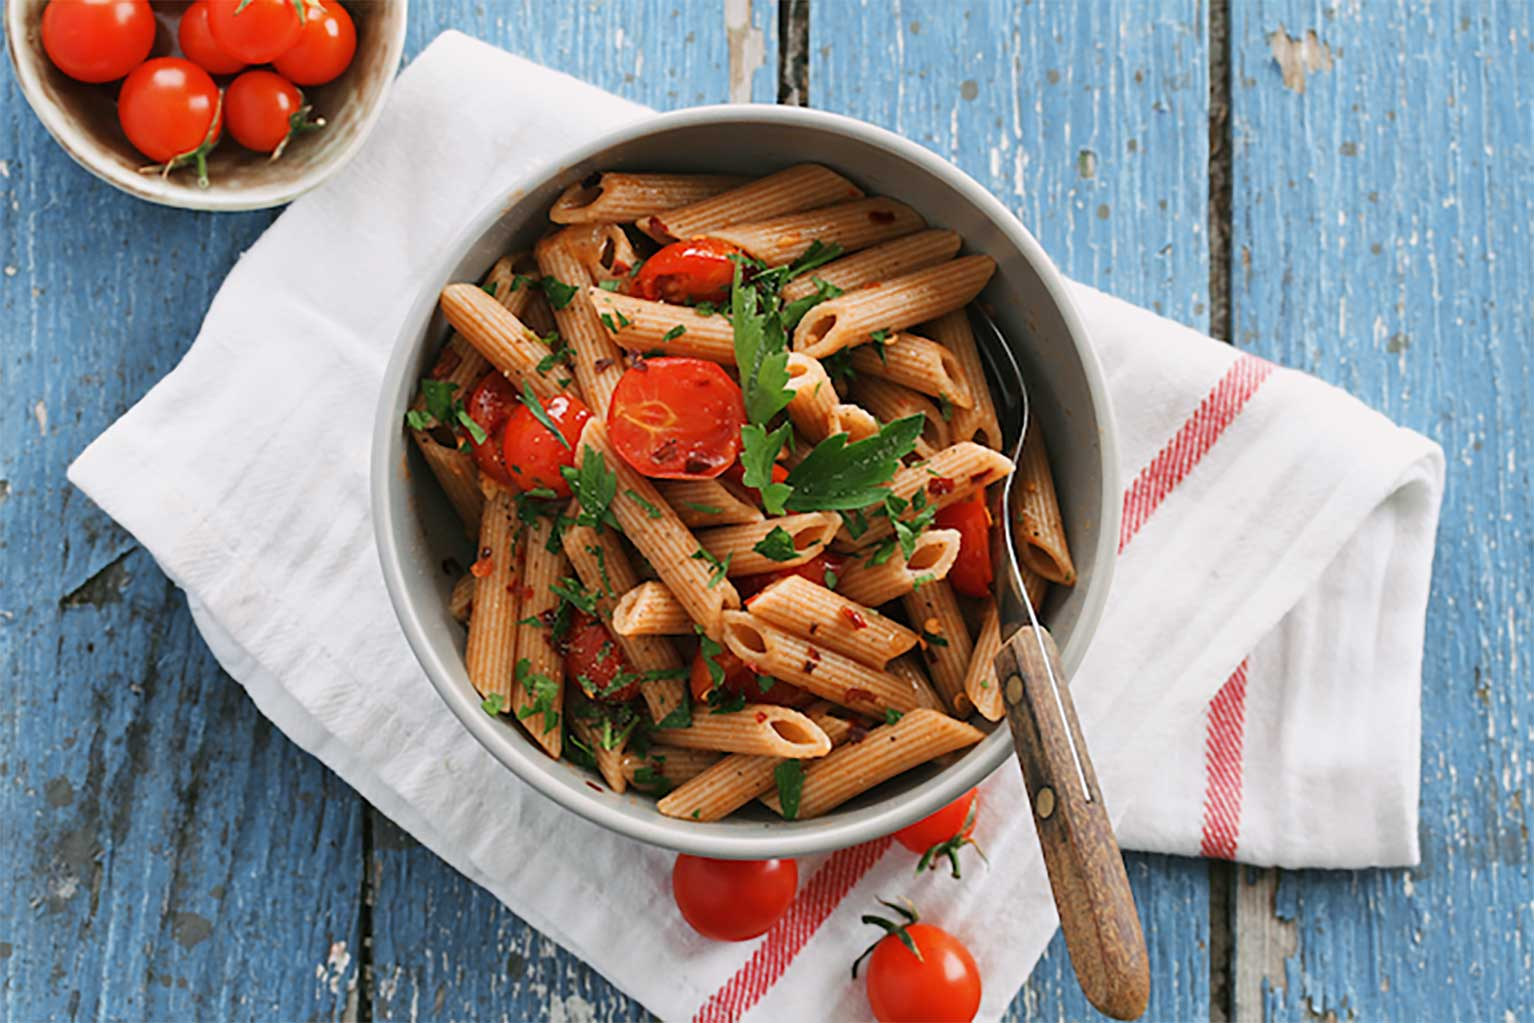 Penne arrabbiata pasta with tomatoes basil and parsley in a bowl